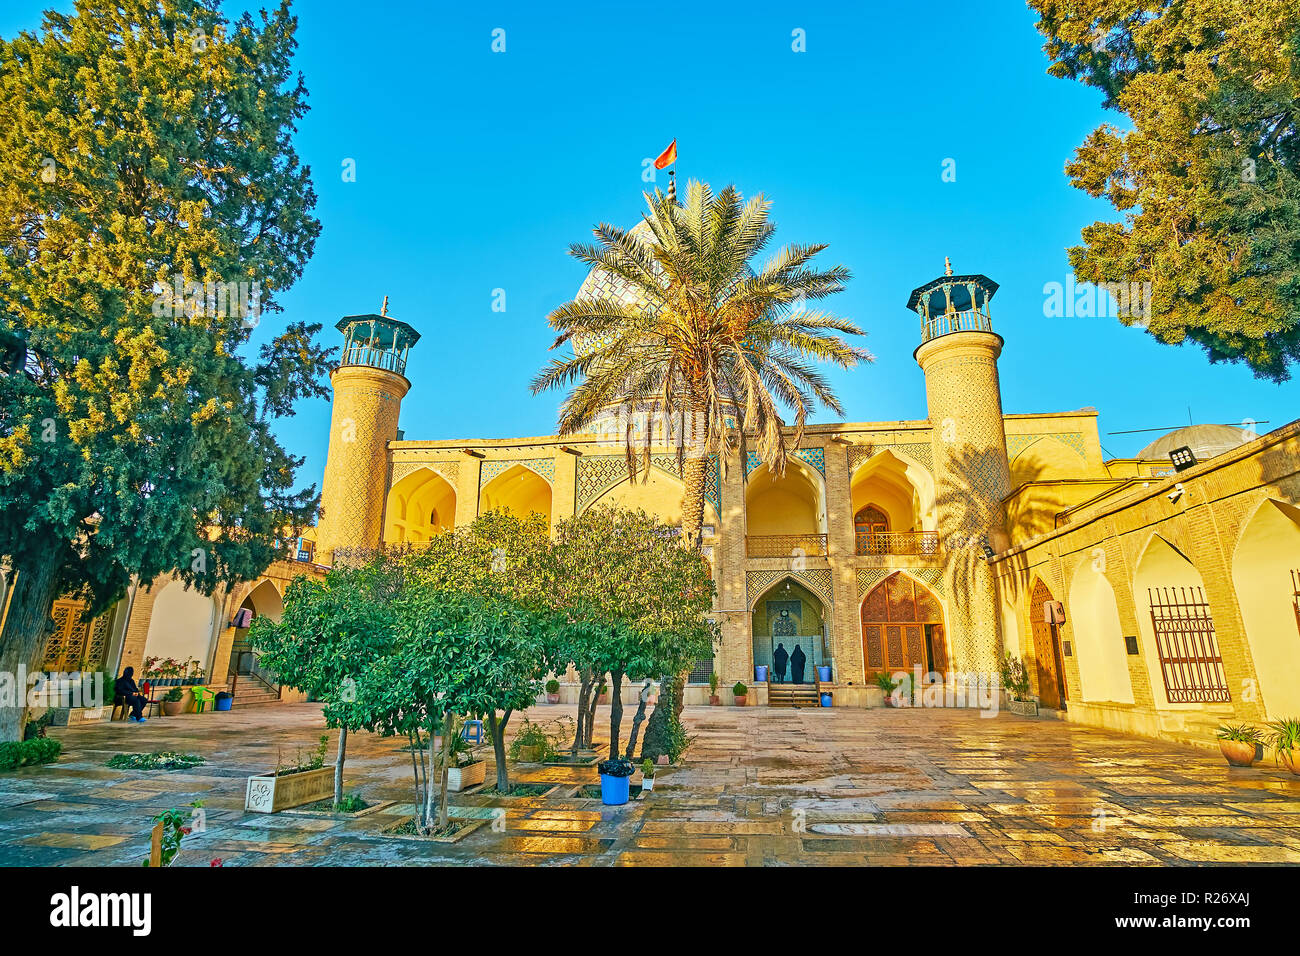 Visit Imamzadeh Ali Ibn Hamzeh Holy Shrine, famous for its traditional Persian architecture and ornate exterior decorations of brick, glazed tile, mos - Stock Image